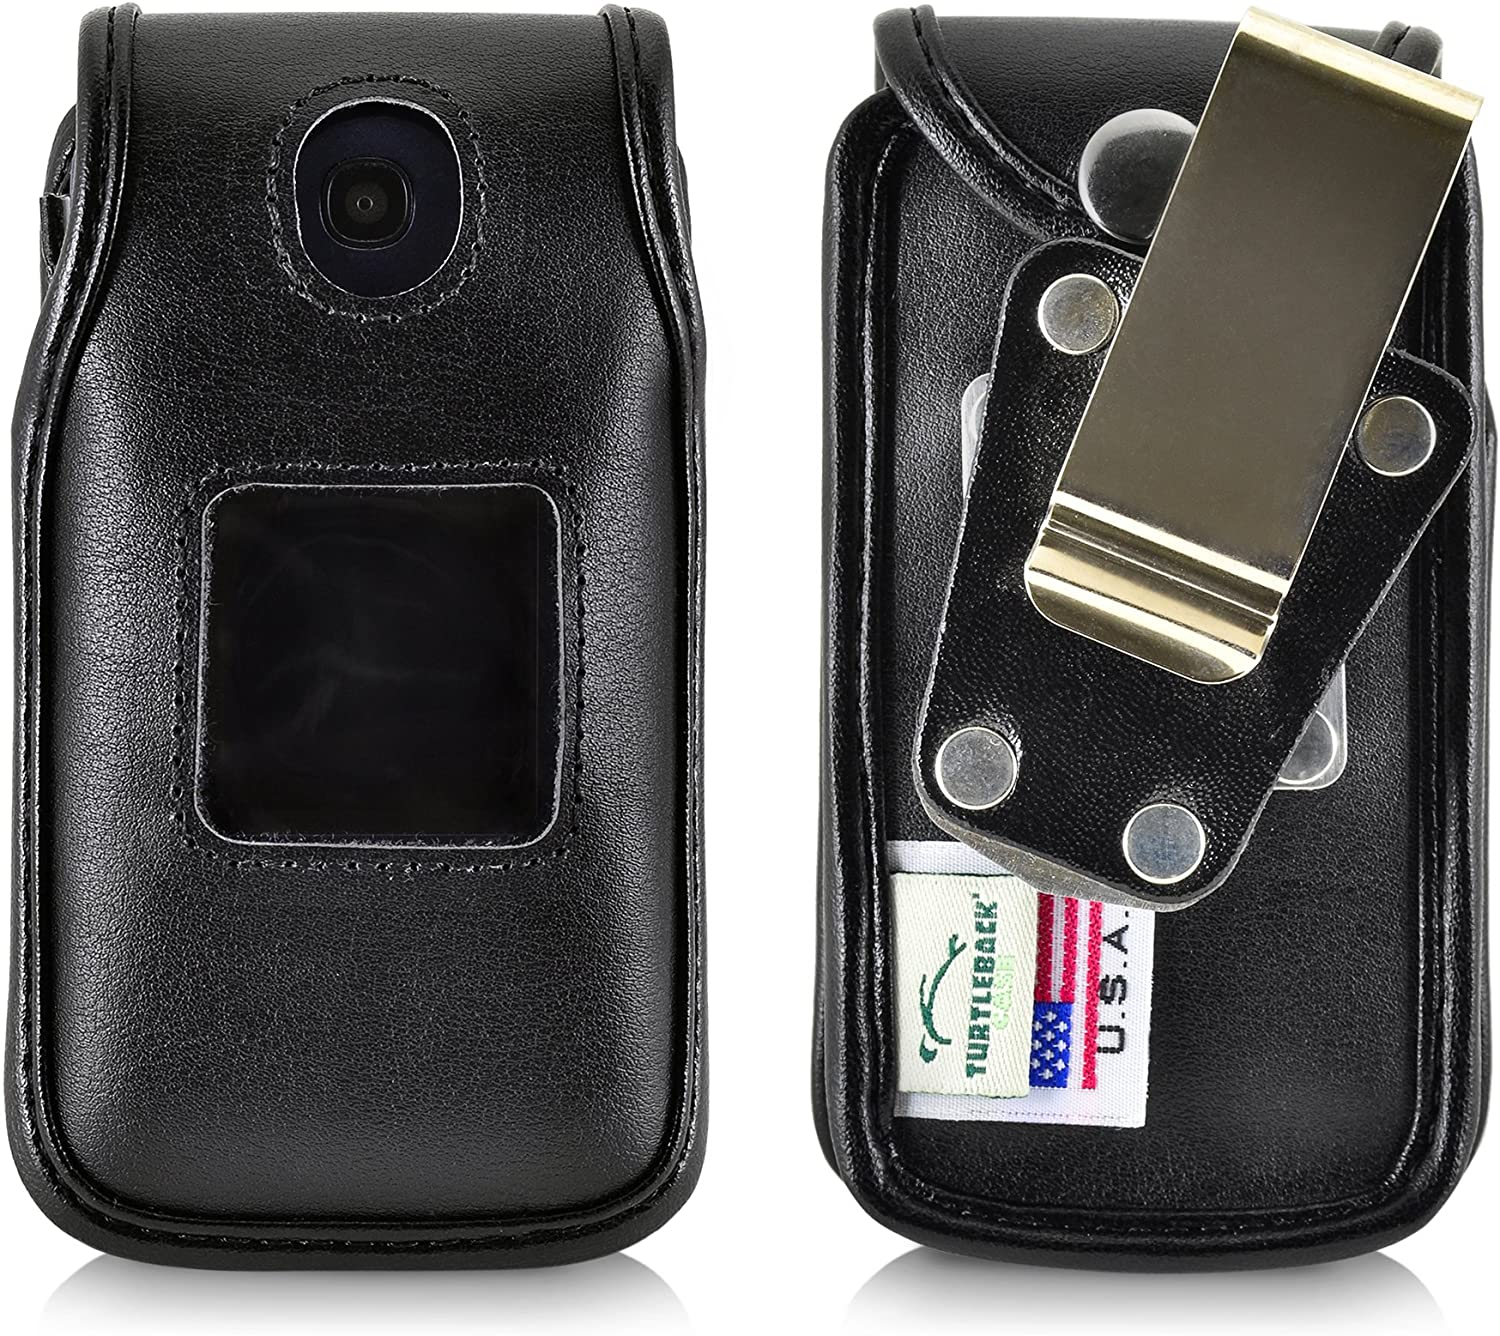 Turtleback Fitted Case for Consumer Cellular Alcatel GO FLIP, Flip V, Phone Also for ATT Cingular FLIP 2 and T-Mobile 4044W, MYFLIP (A405DL) with Metal Heavy Duty Ratcheting Removable Belt Clip